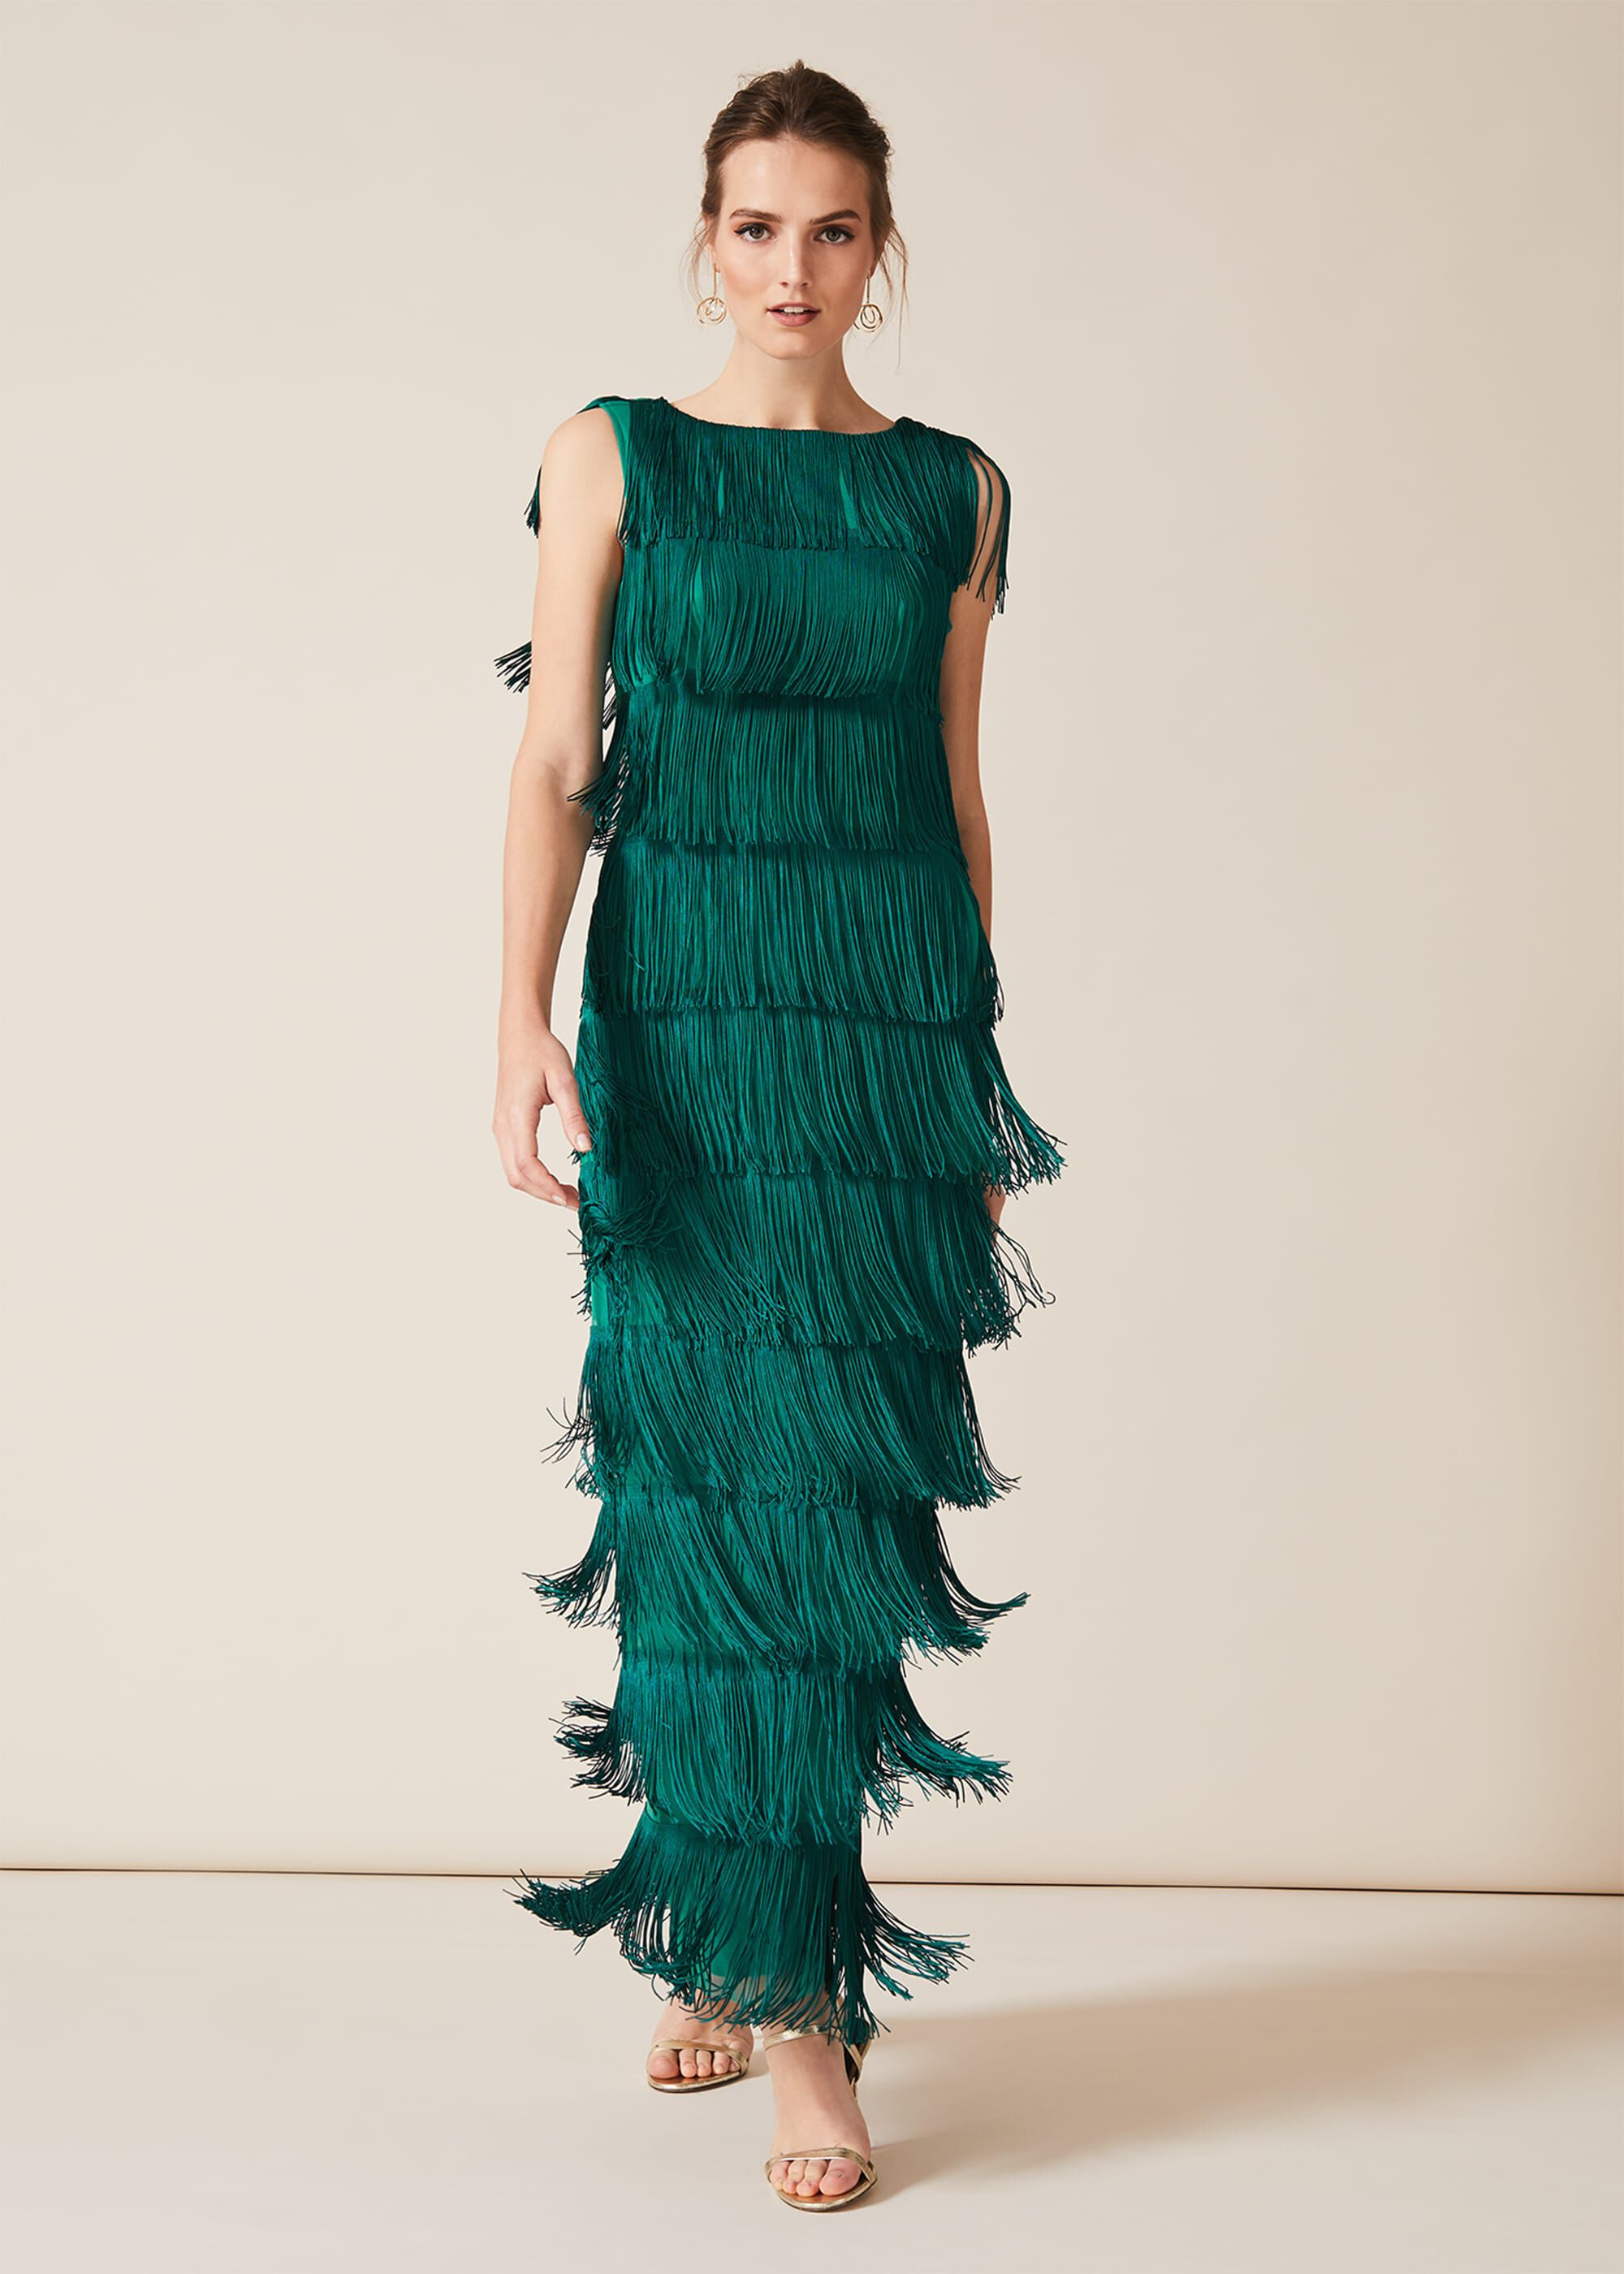 Phase Eight Ismay Fringe Maxi Dress, Green, Maxi, Occasion Dress